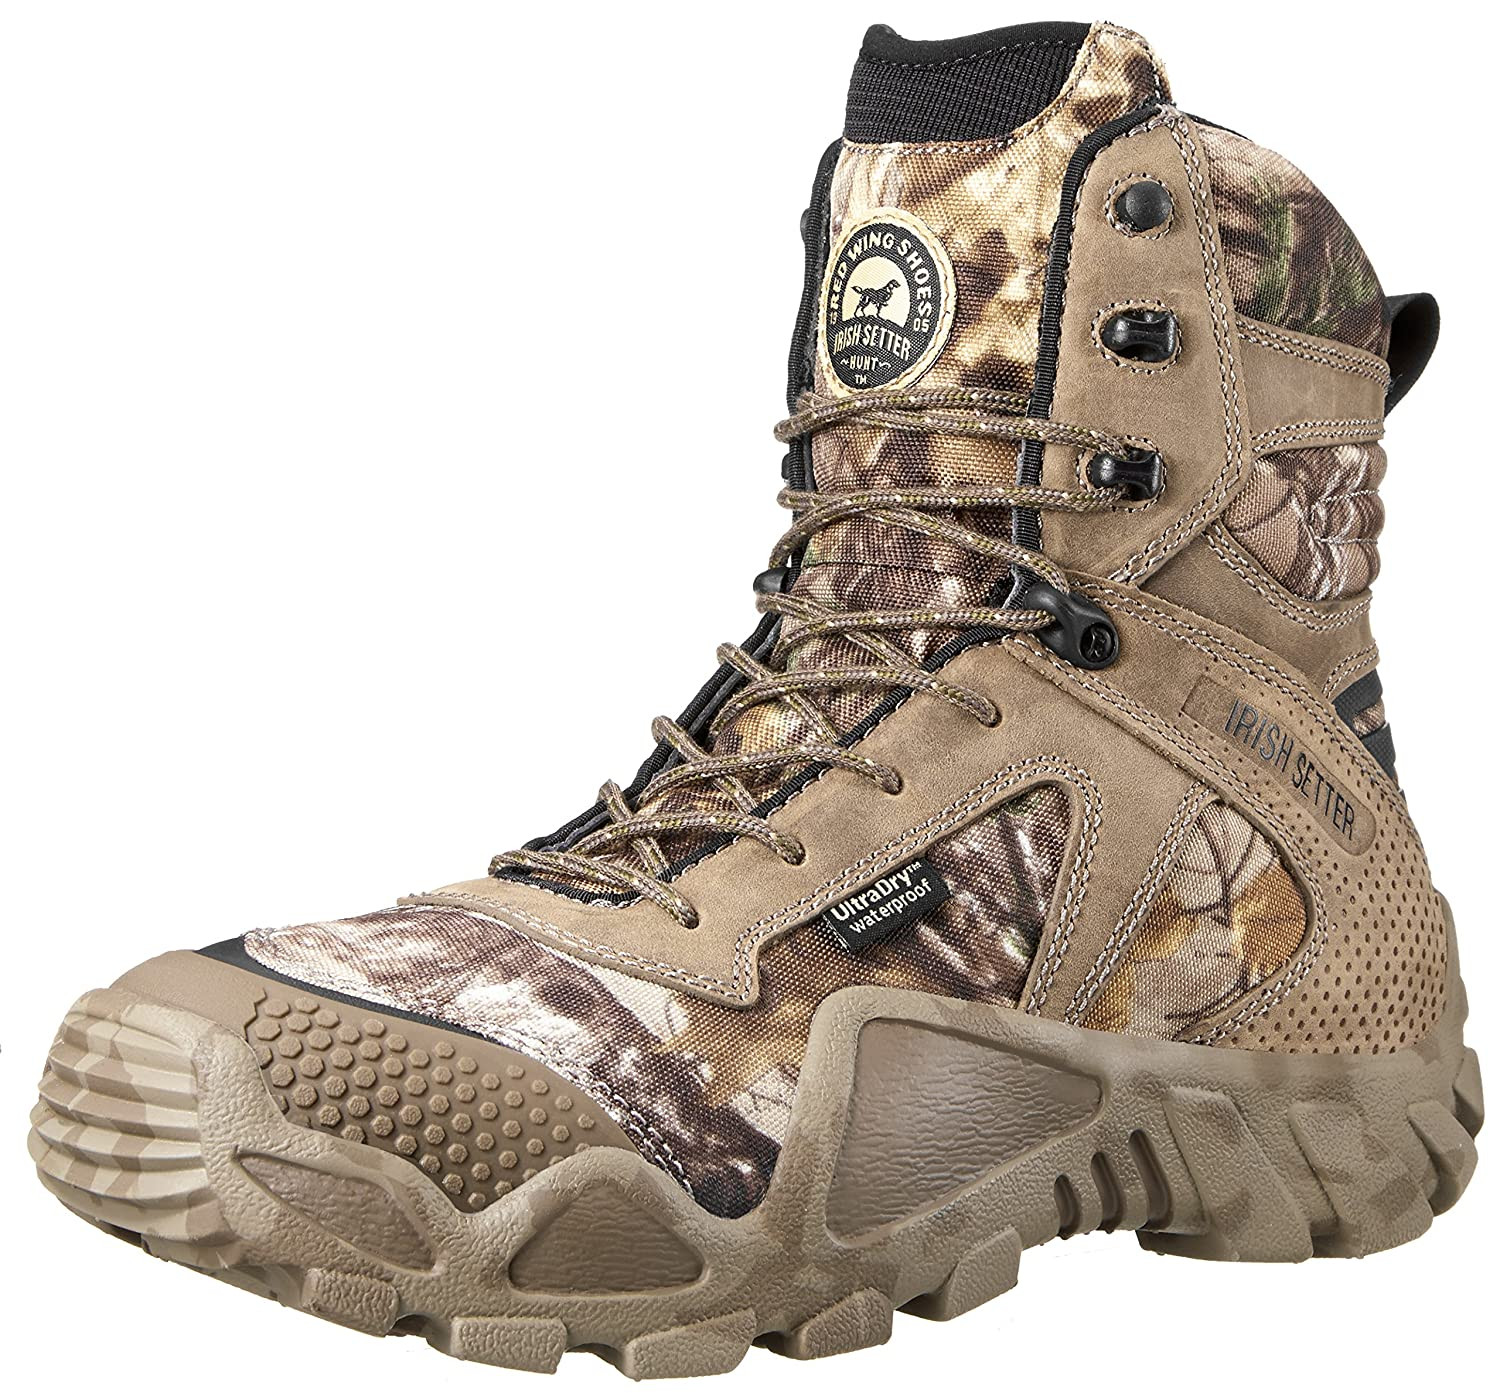 Realtree Xtra Camouflage 10 D(M) US Irish Setter Men's 2870 Vaprtrek Waterproof 8 Inch Boot